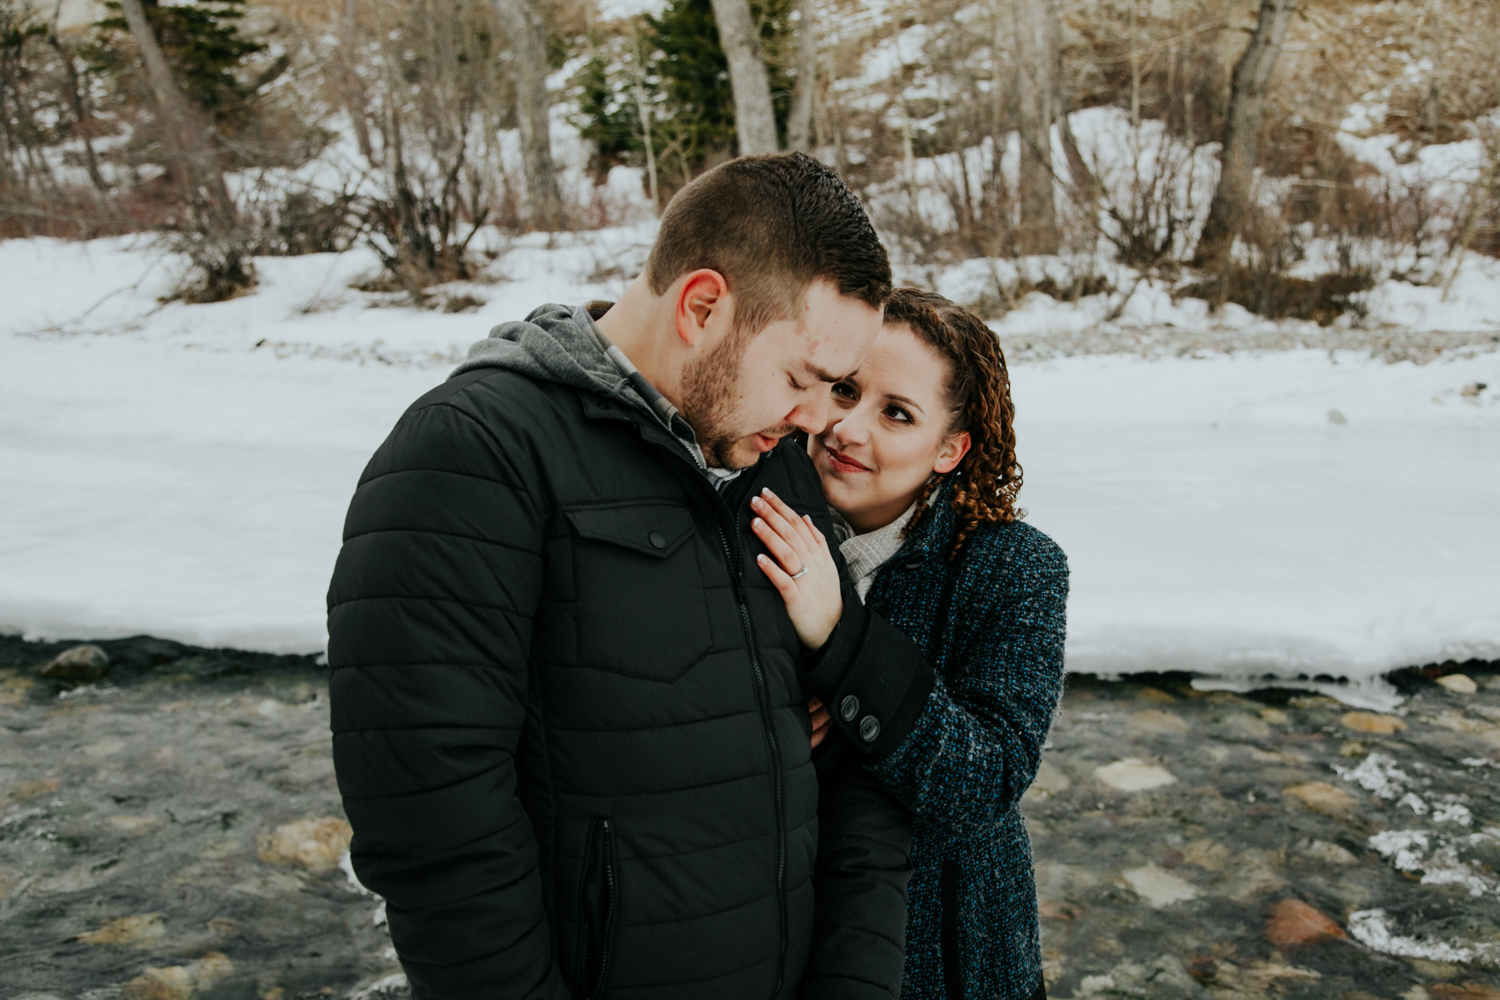 waterton-photographer-love-and-be-loved-photography-trent-danielle-engagement-winter-picture-image-photo-31.jpg